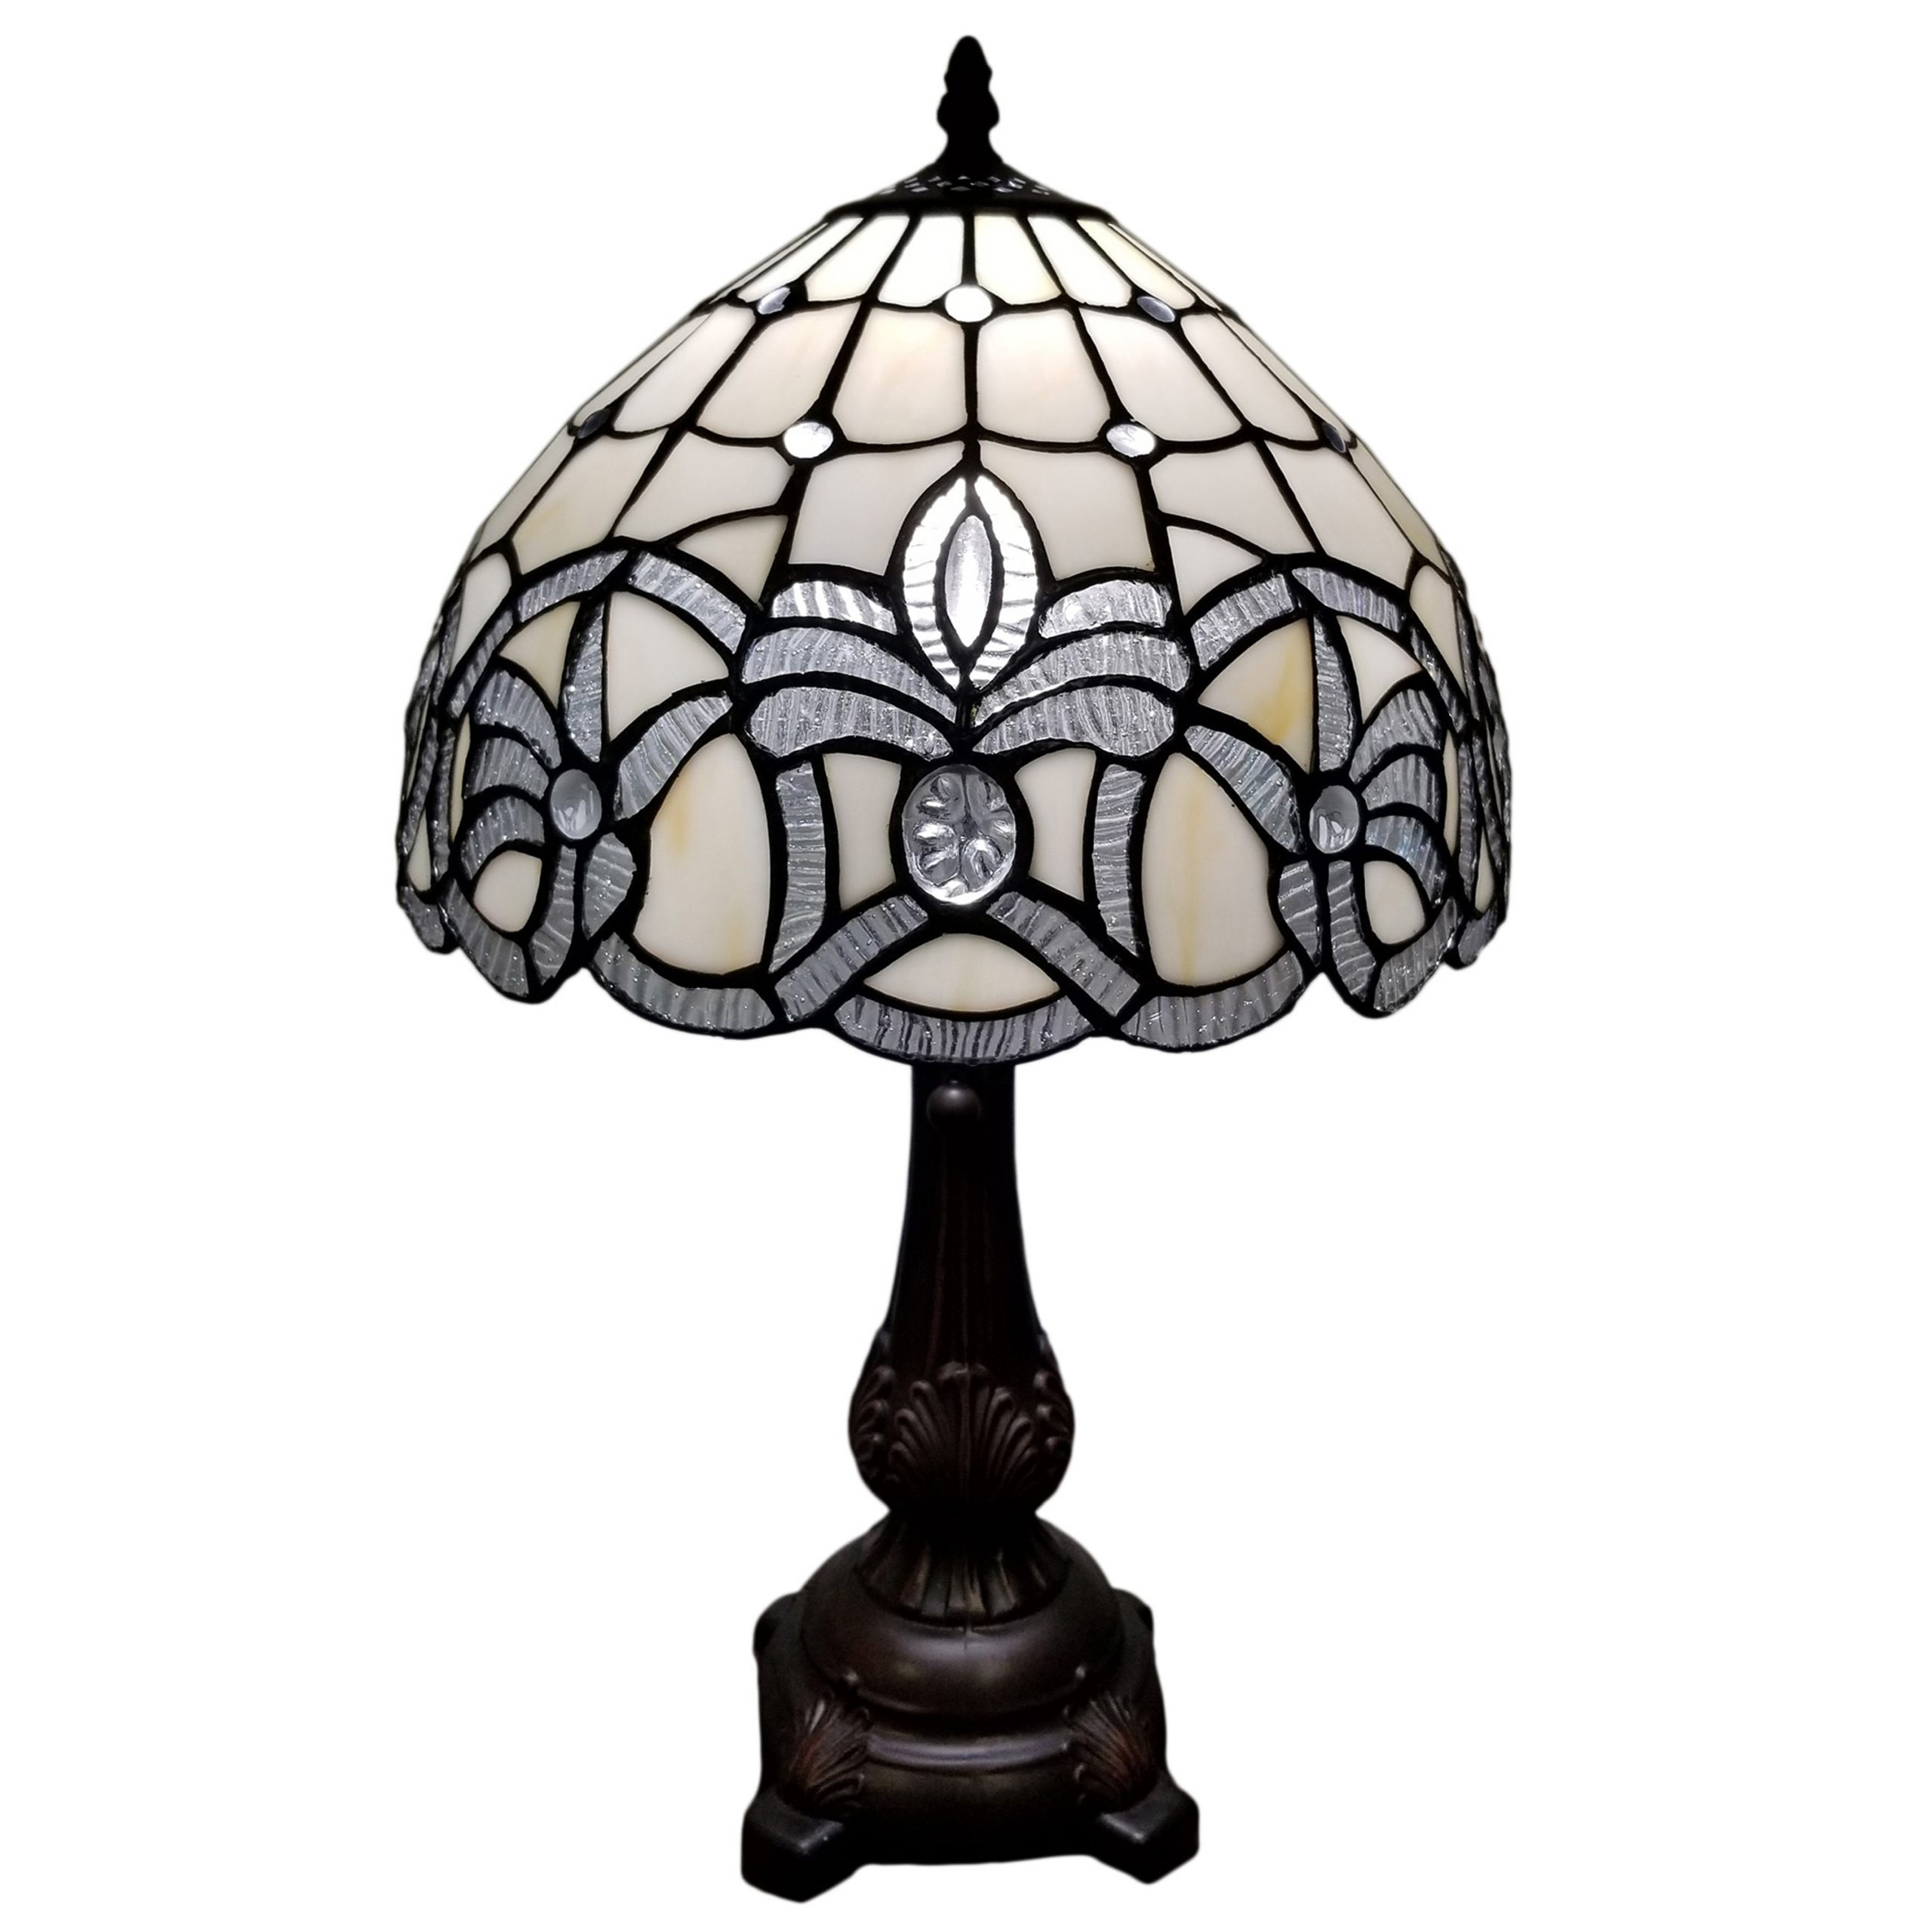 Tiffany Style Table Lamp 19 Tall Stained Glass White Floral Decor Nightstand Bedroom Handmade Gift Am281tl12b Amora Lighting Overstock 29030459